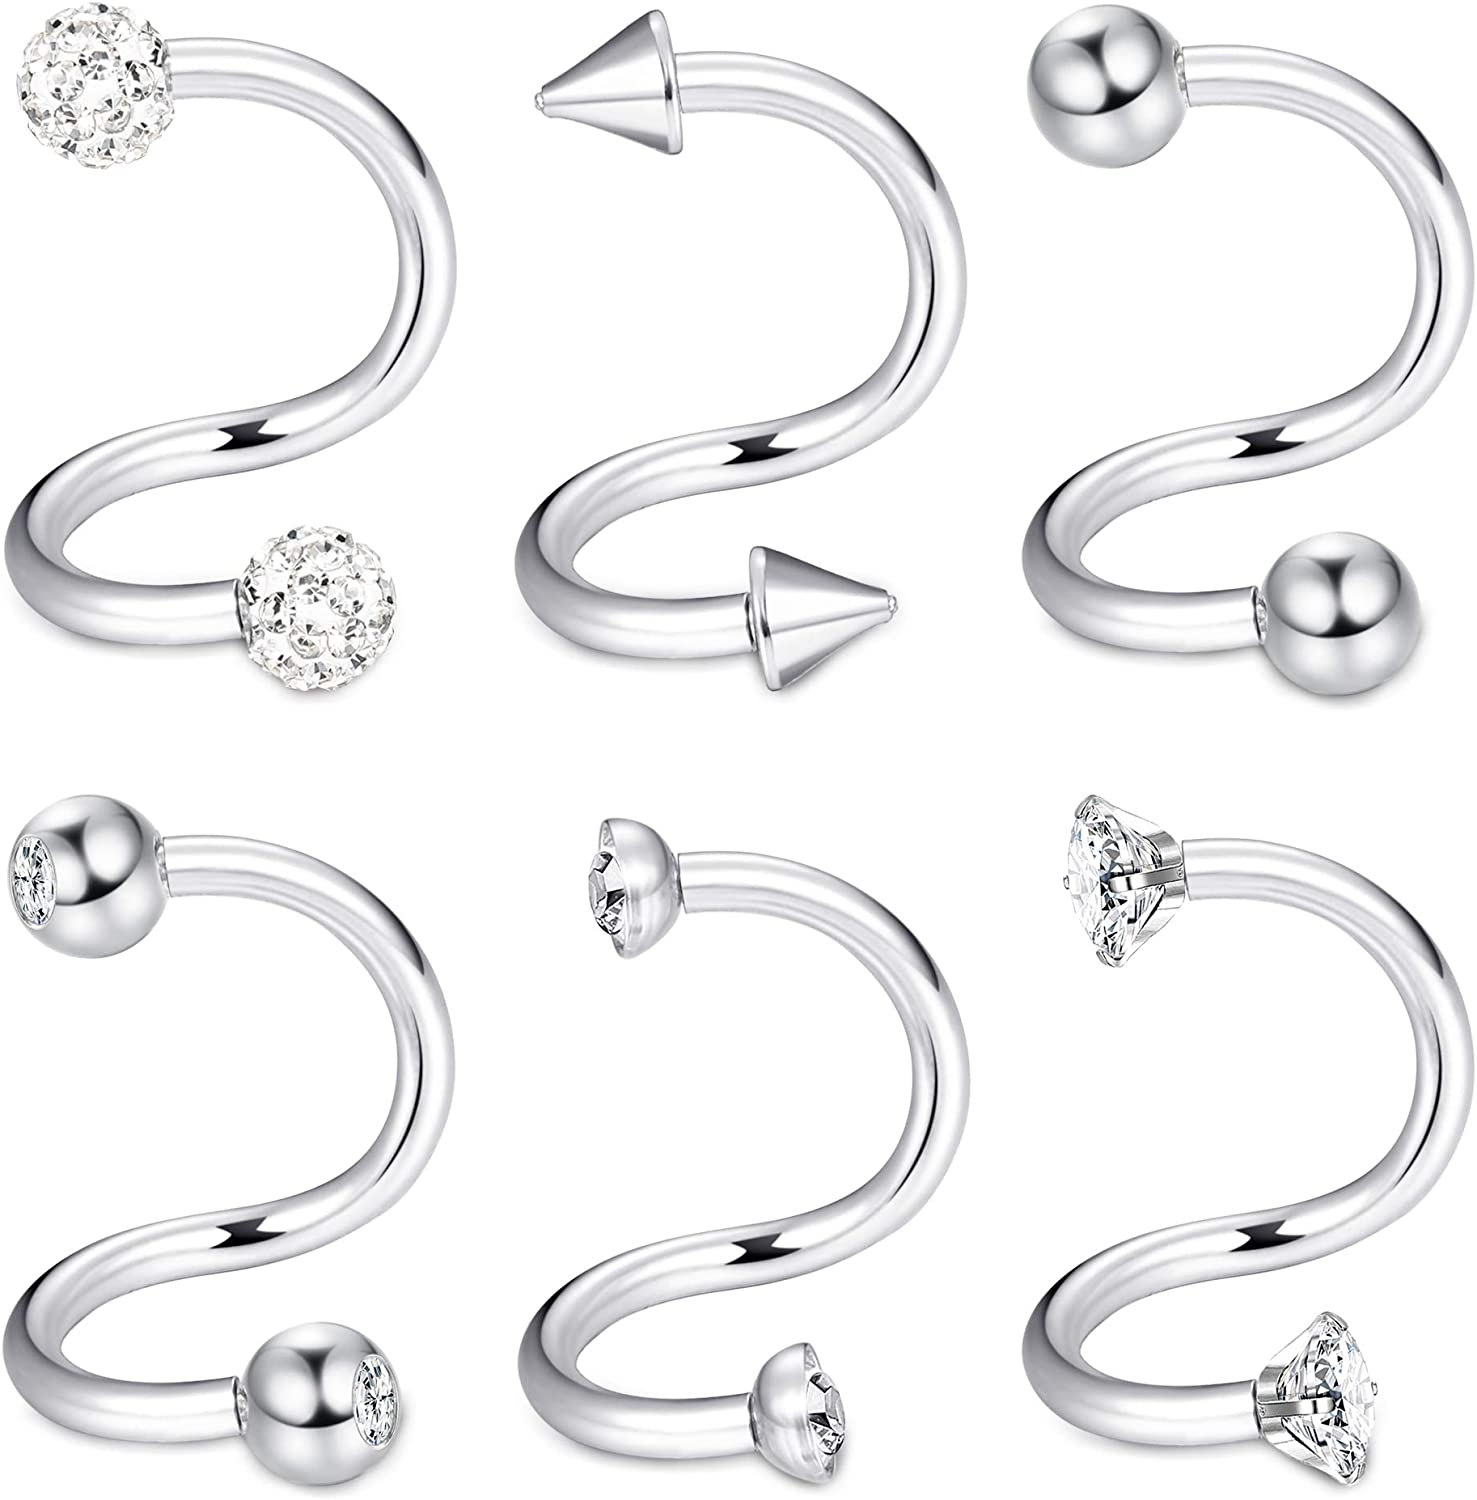 ORAZIO 6PCS 16G Spiral Barbell Cartilage Earrings Twist Ear Lobe Helix Tragus Nose Piercing Body Jewelry 8mm 10mm